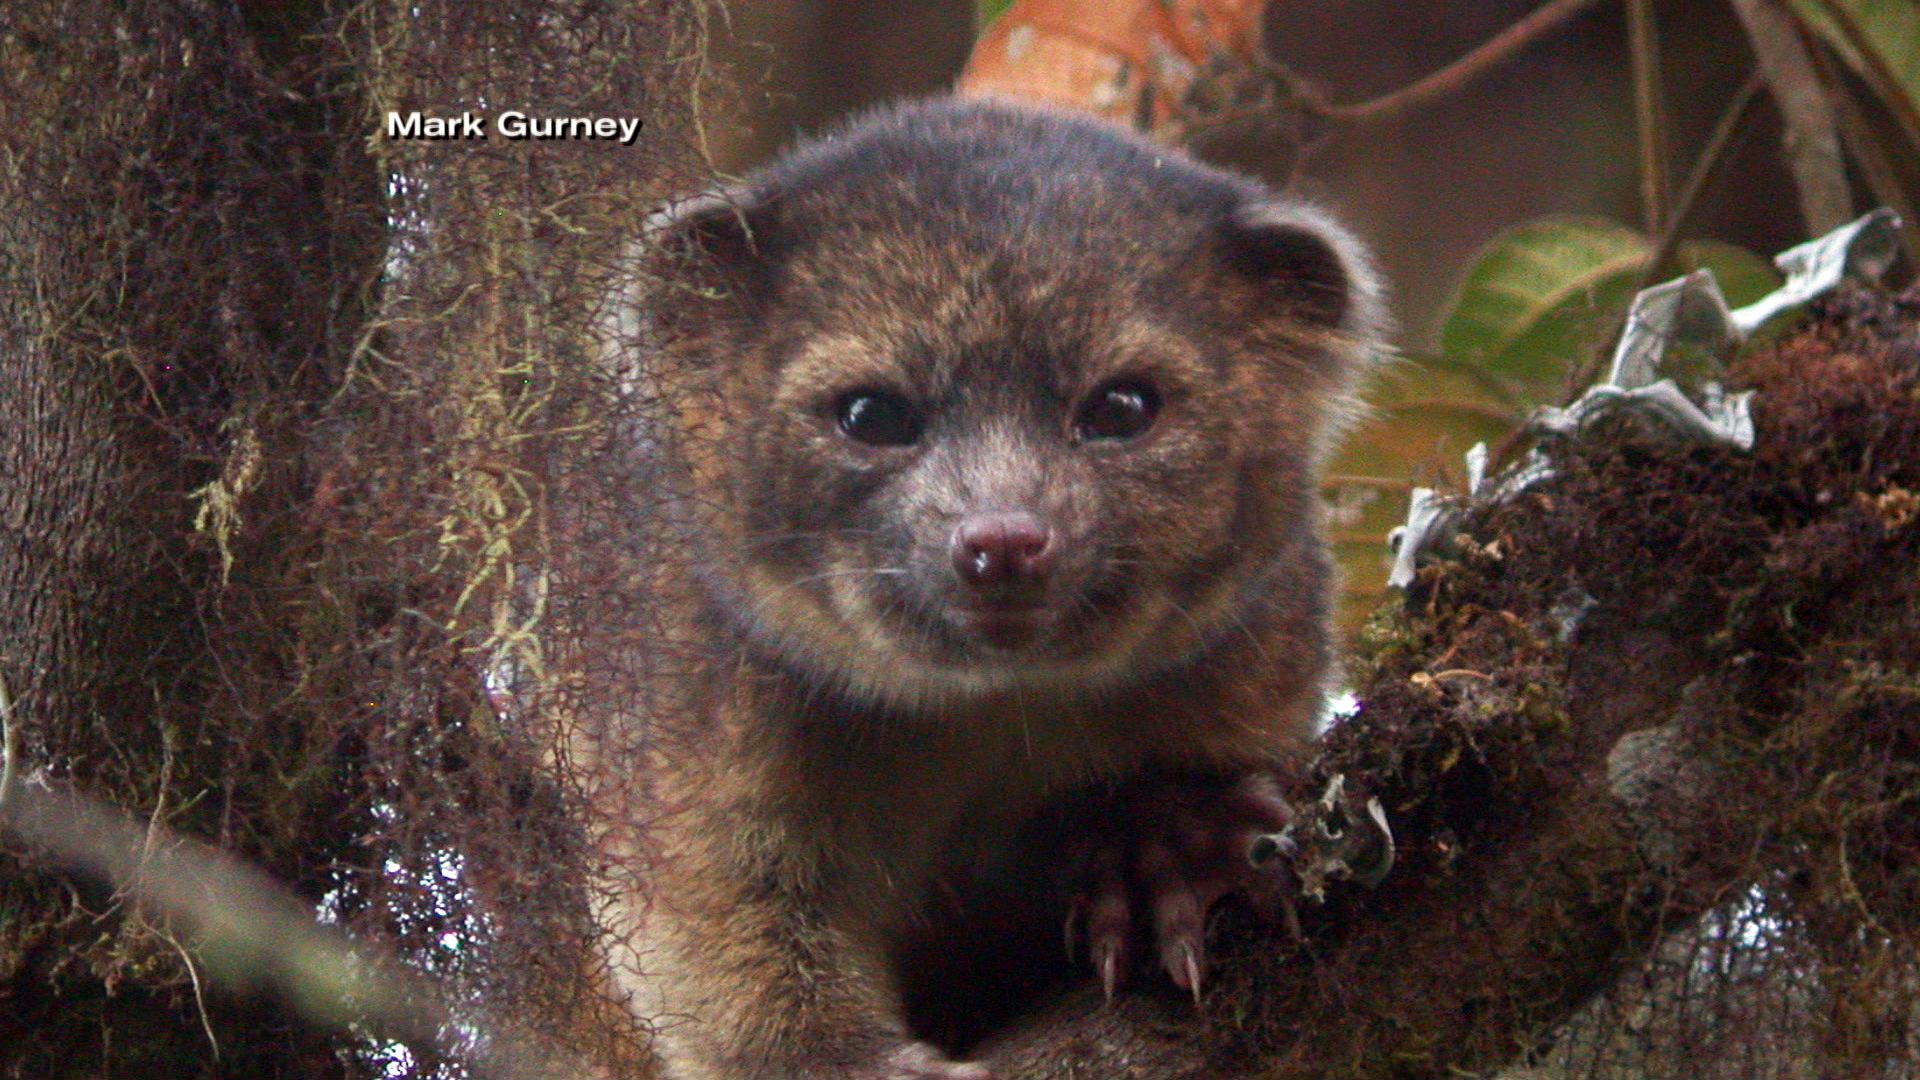 Cutest new animal' discovered: It's an olinguito! - NBC News